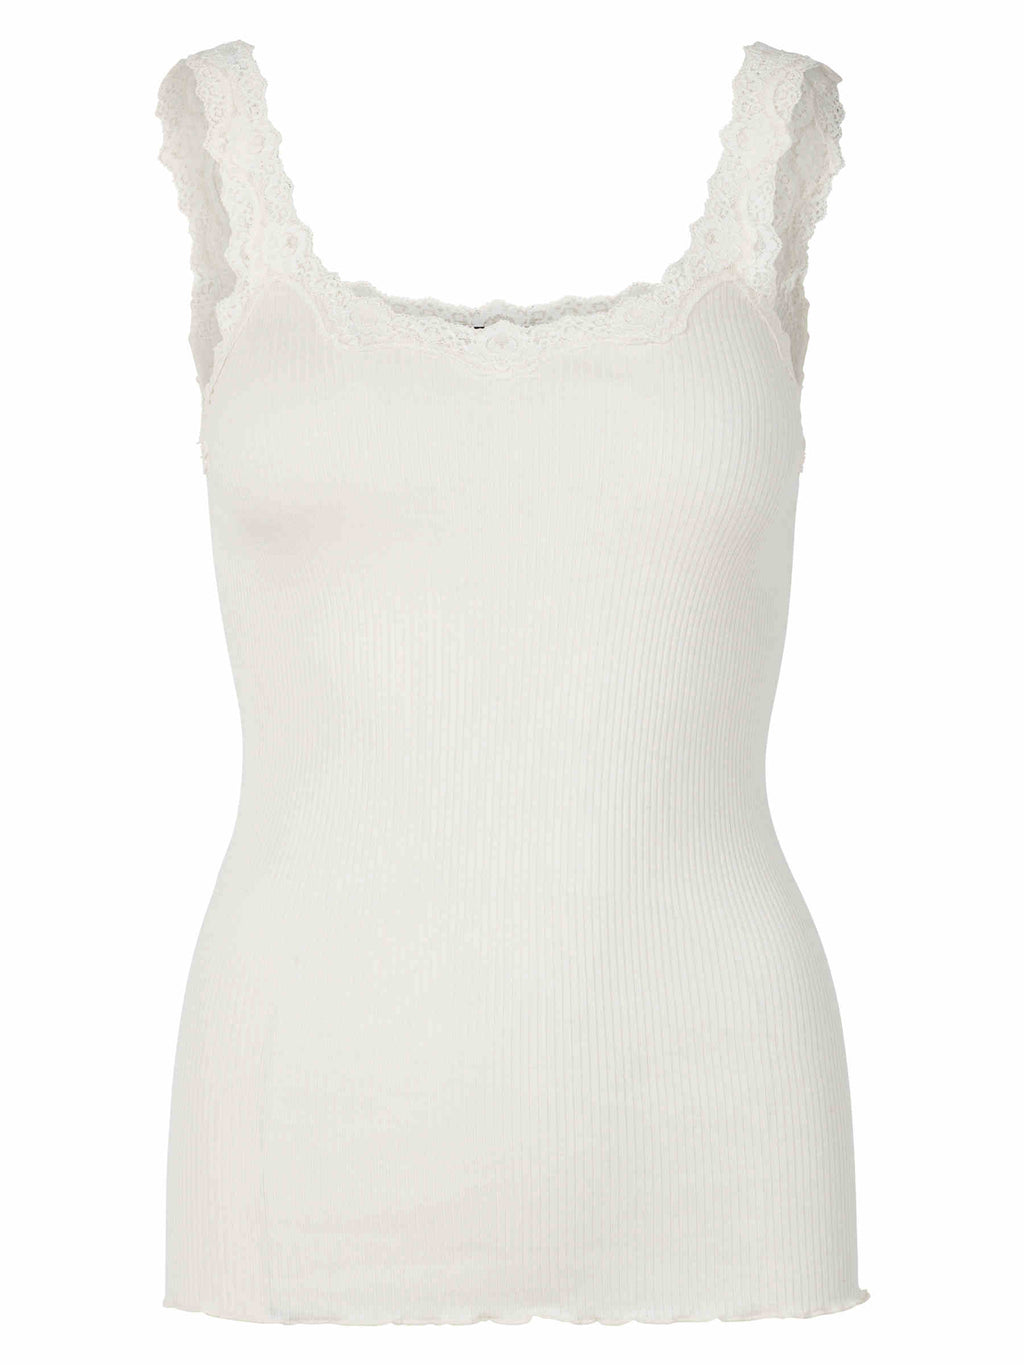 Rosemunde - silk top with beautiful lace details ivory off-white